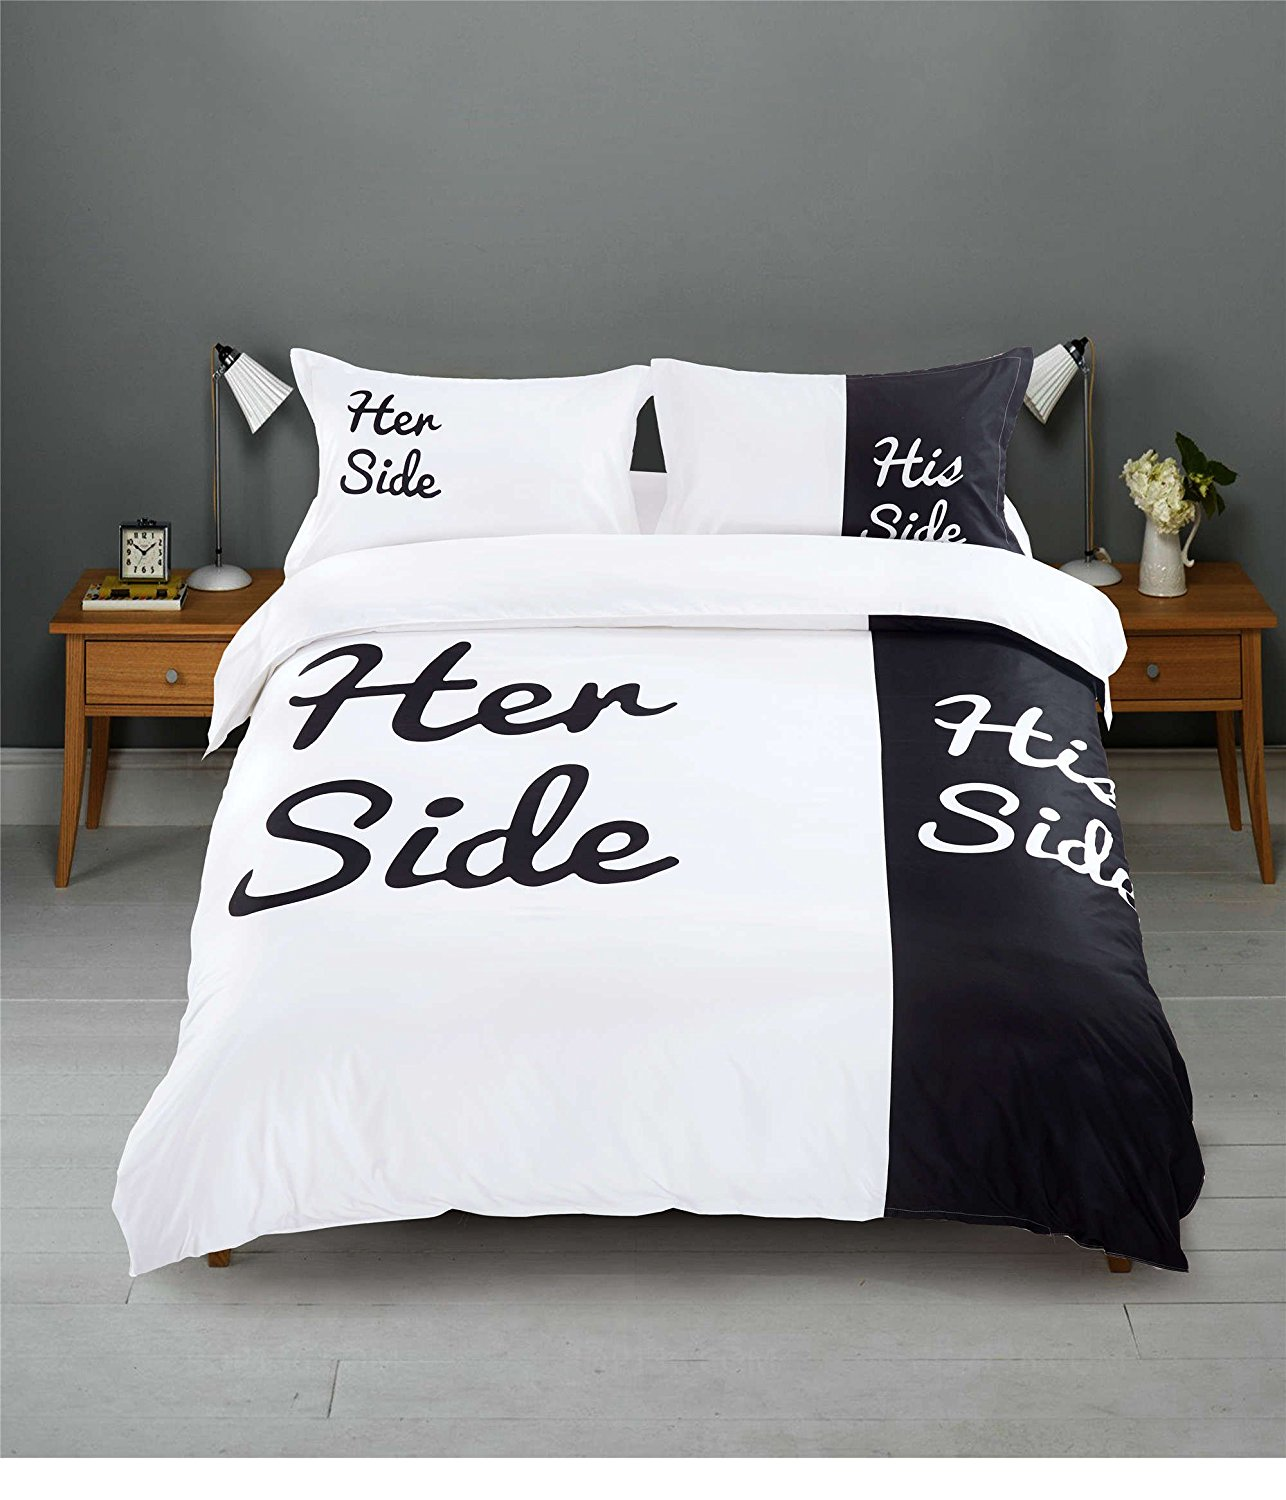 CocoQueen Couple Her/His Side 4pc Duvet Cover Set 100% Brushed Microfiber Queen Size